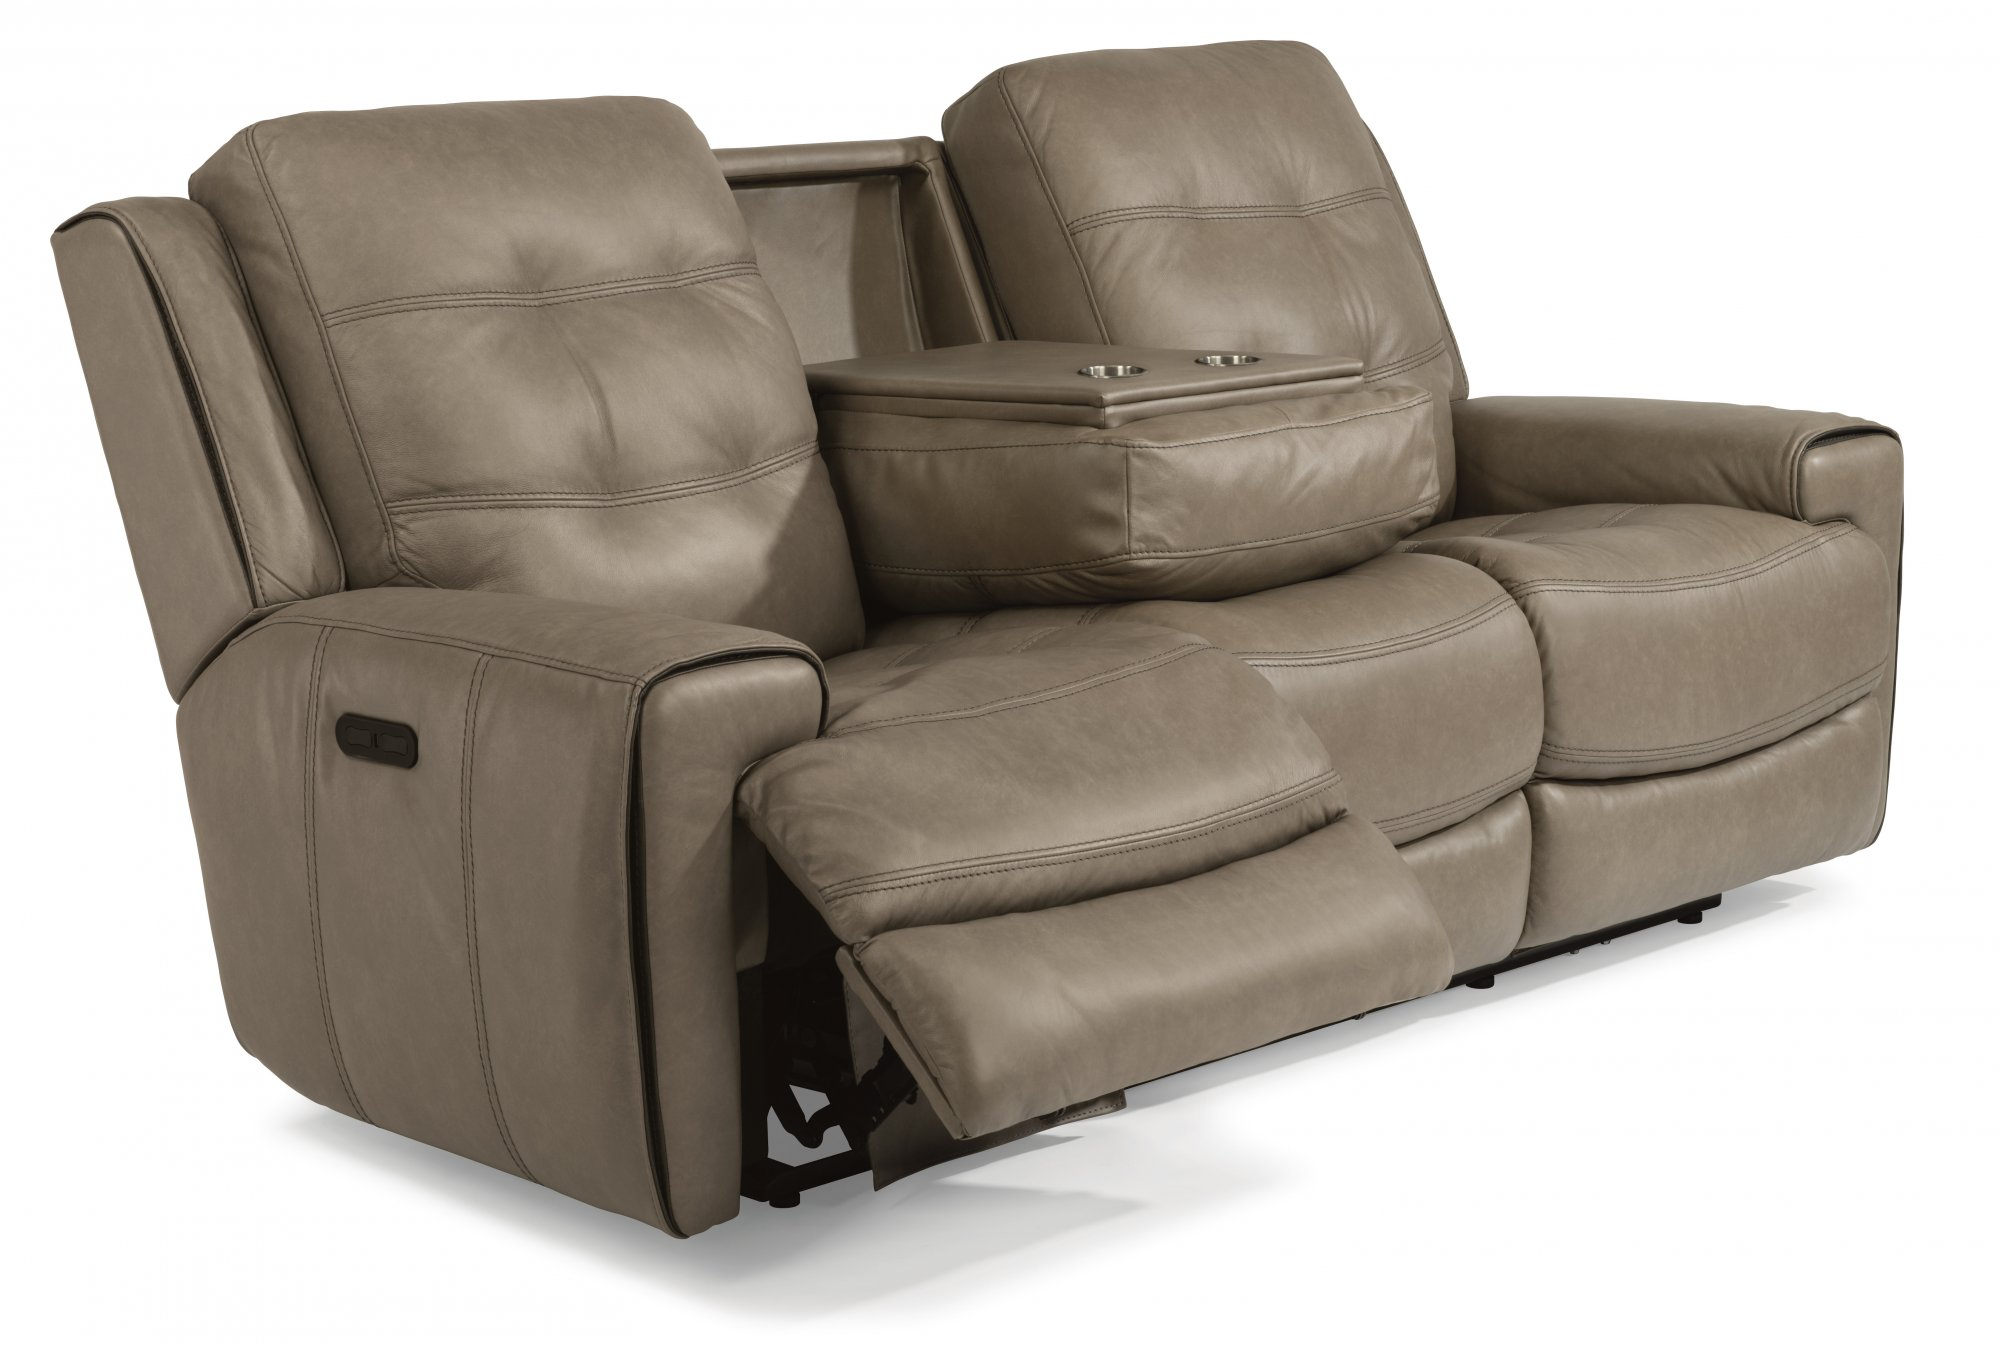 Epic Recliner Sofa Chair 42 About Remodel Modern Sofa Inspiration